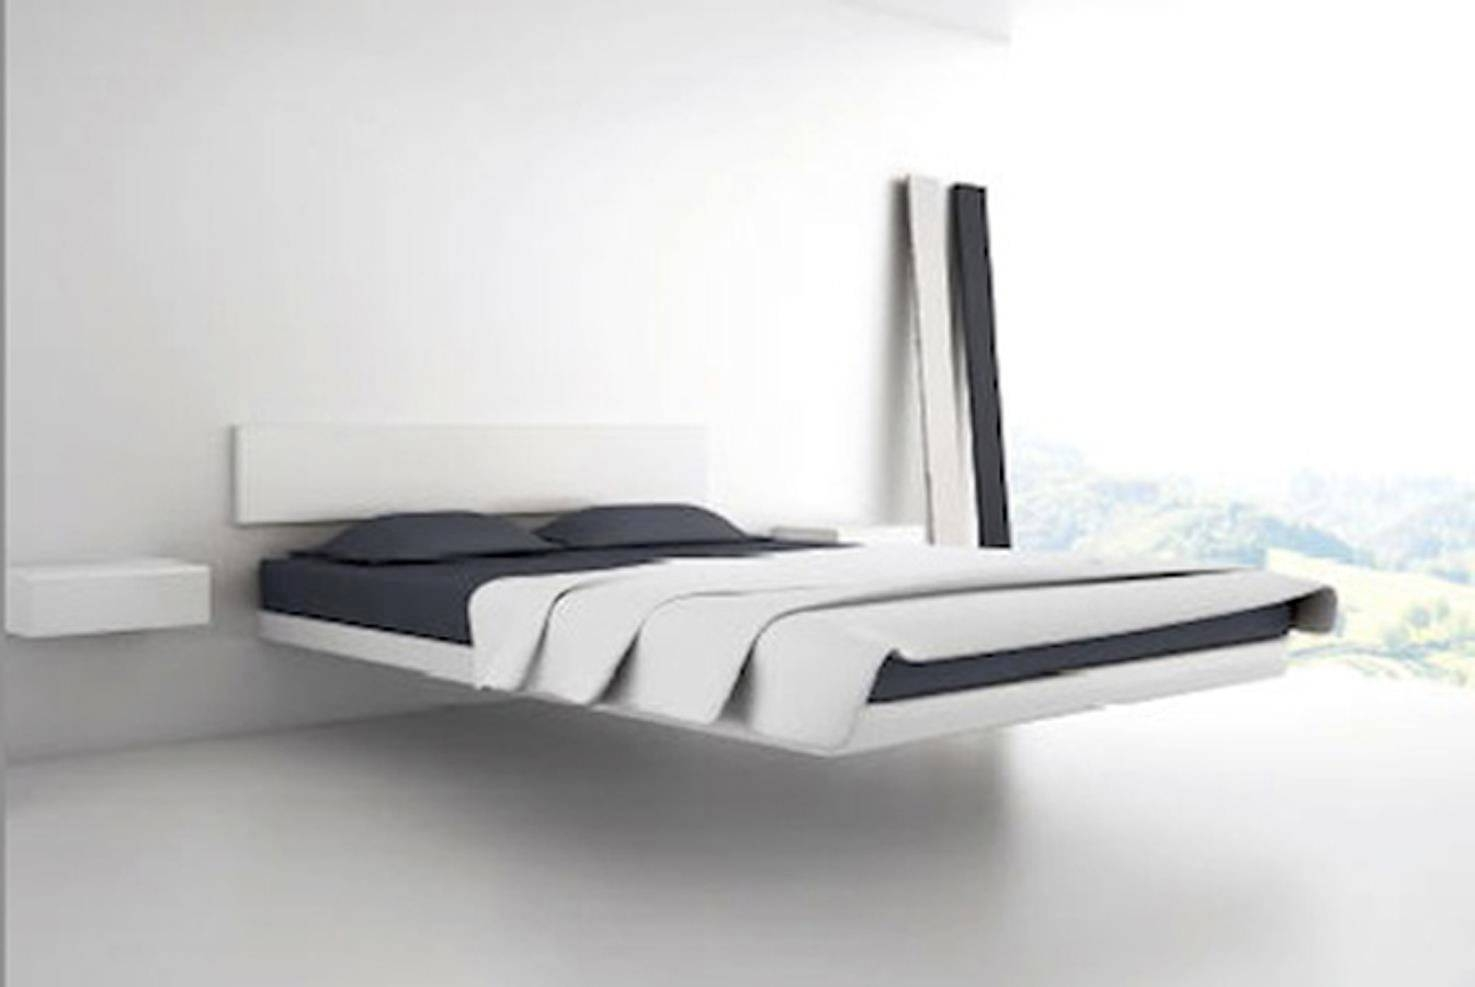 Magnetic Floating Sofa - Bible-Saitama intended for Magnetic Floating Sofas (Image 14 of 15)